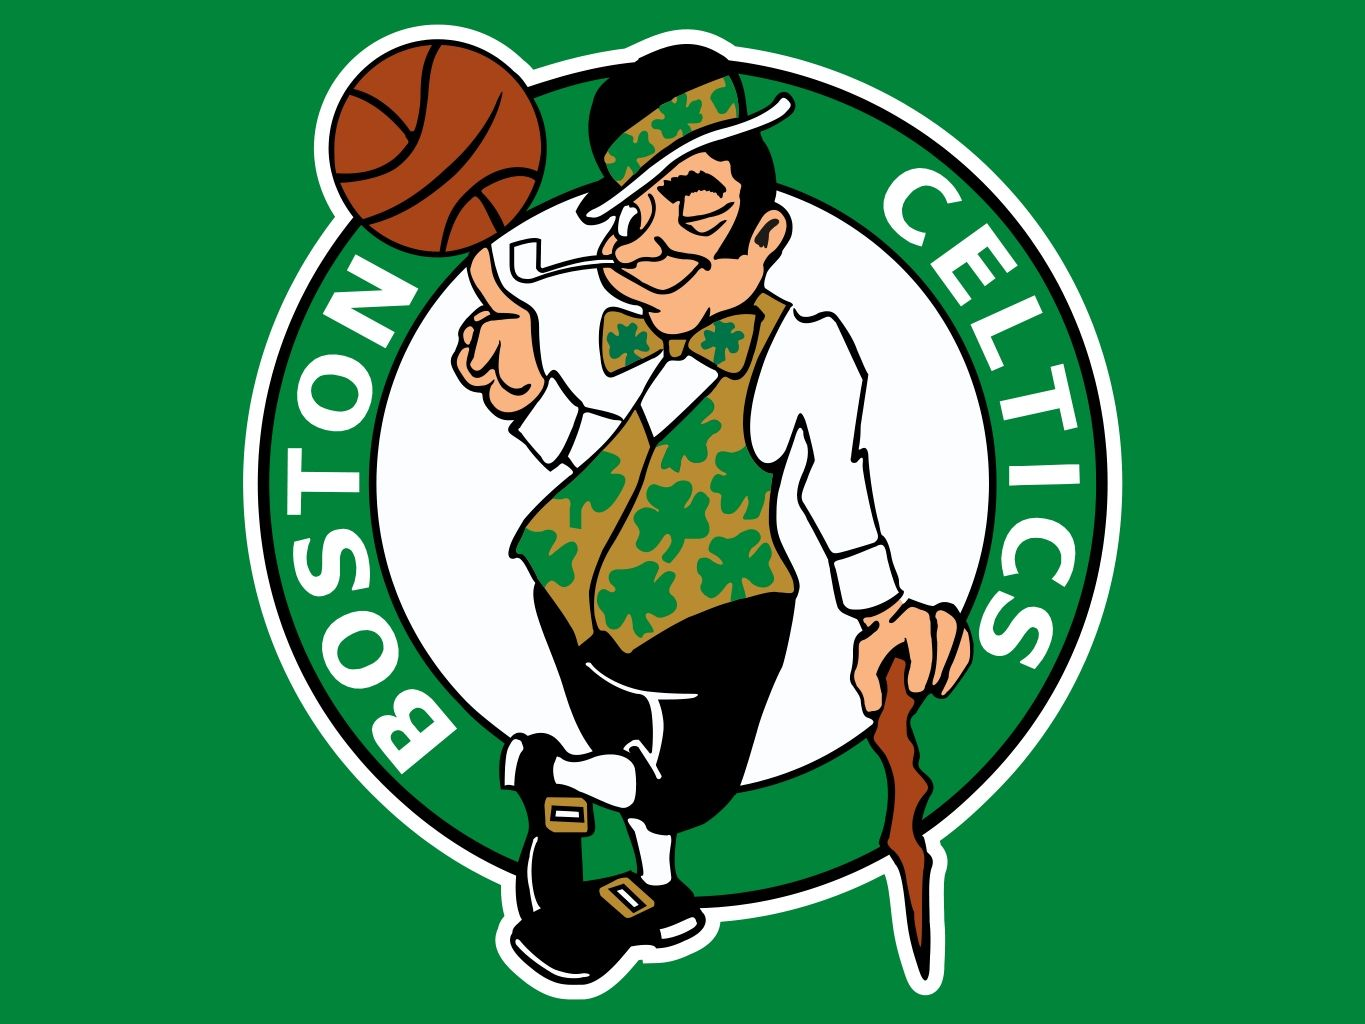 Buy Sell Or Bid For Cheap Boston Celtics Tickets http